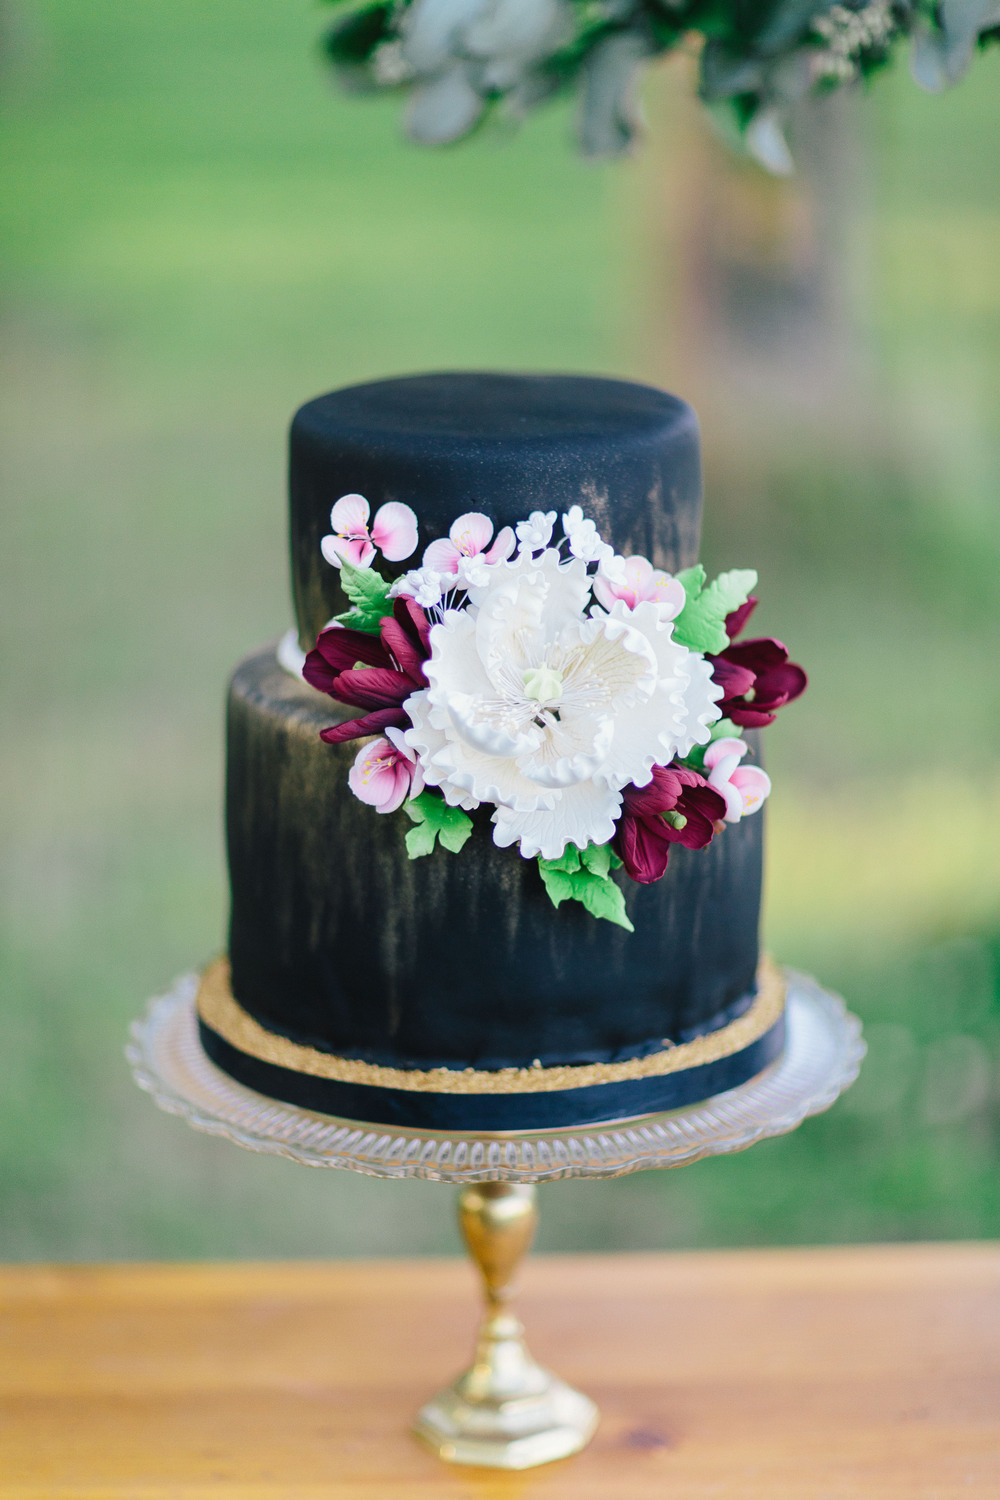 Maxit Flower Design; Vineyard Bridal Styled Shoot 0333_Kristen Curette Photography.jpg